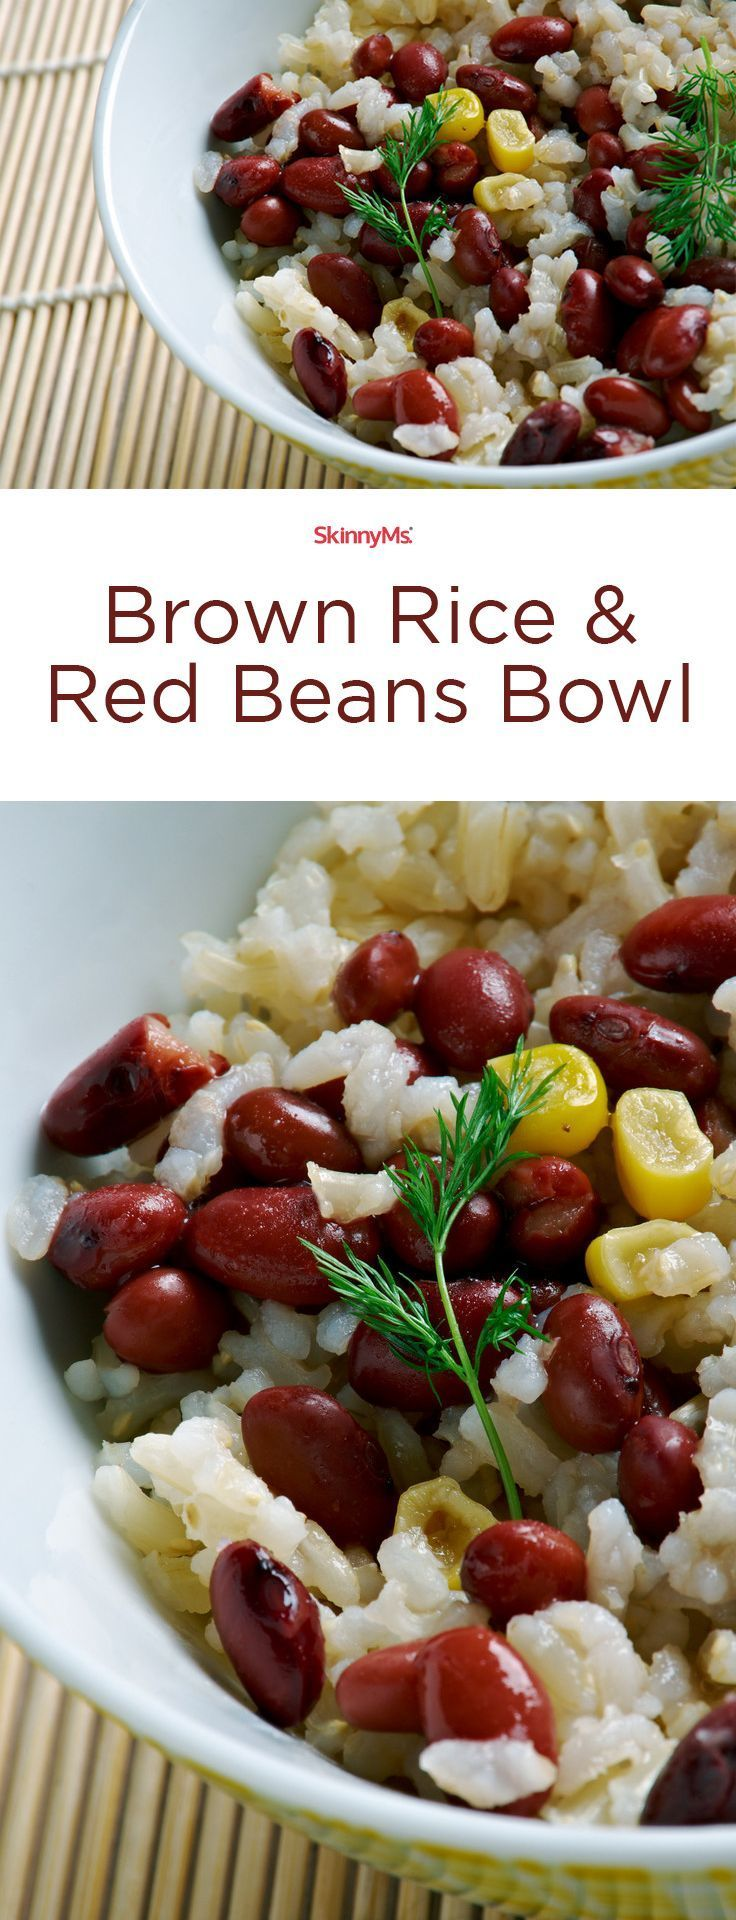 If youre a fan of burrito bowls, youll love this flavorful, nutrient-rich Brown Rice & Red Beans Bowl! Soooo addictive. #skinnyms